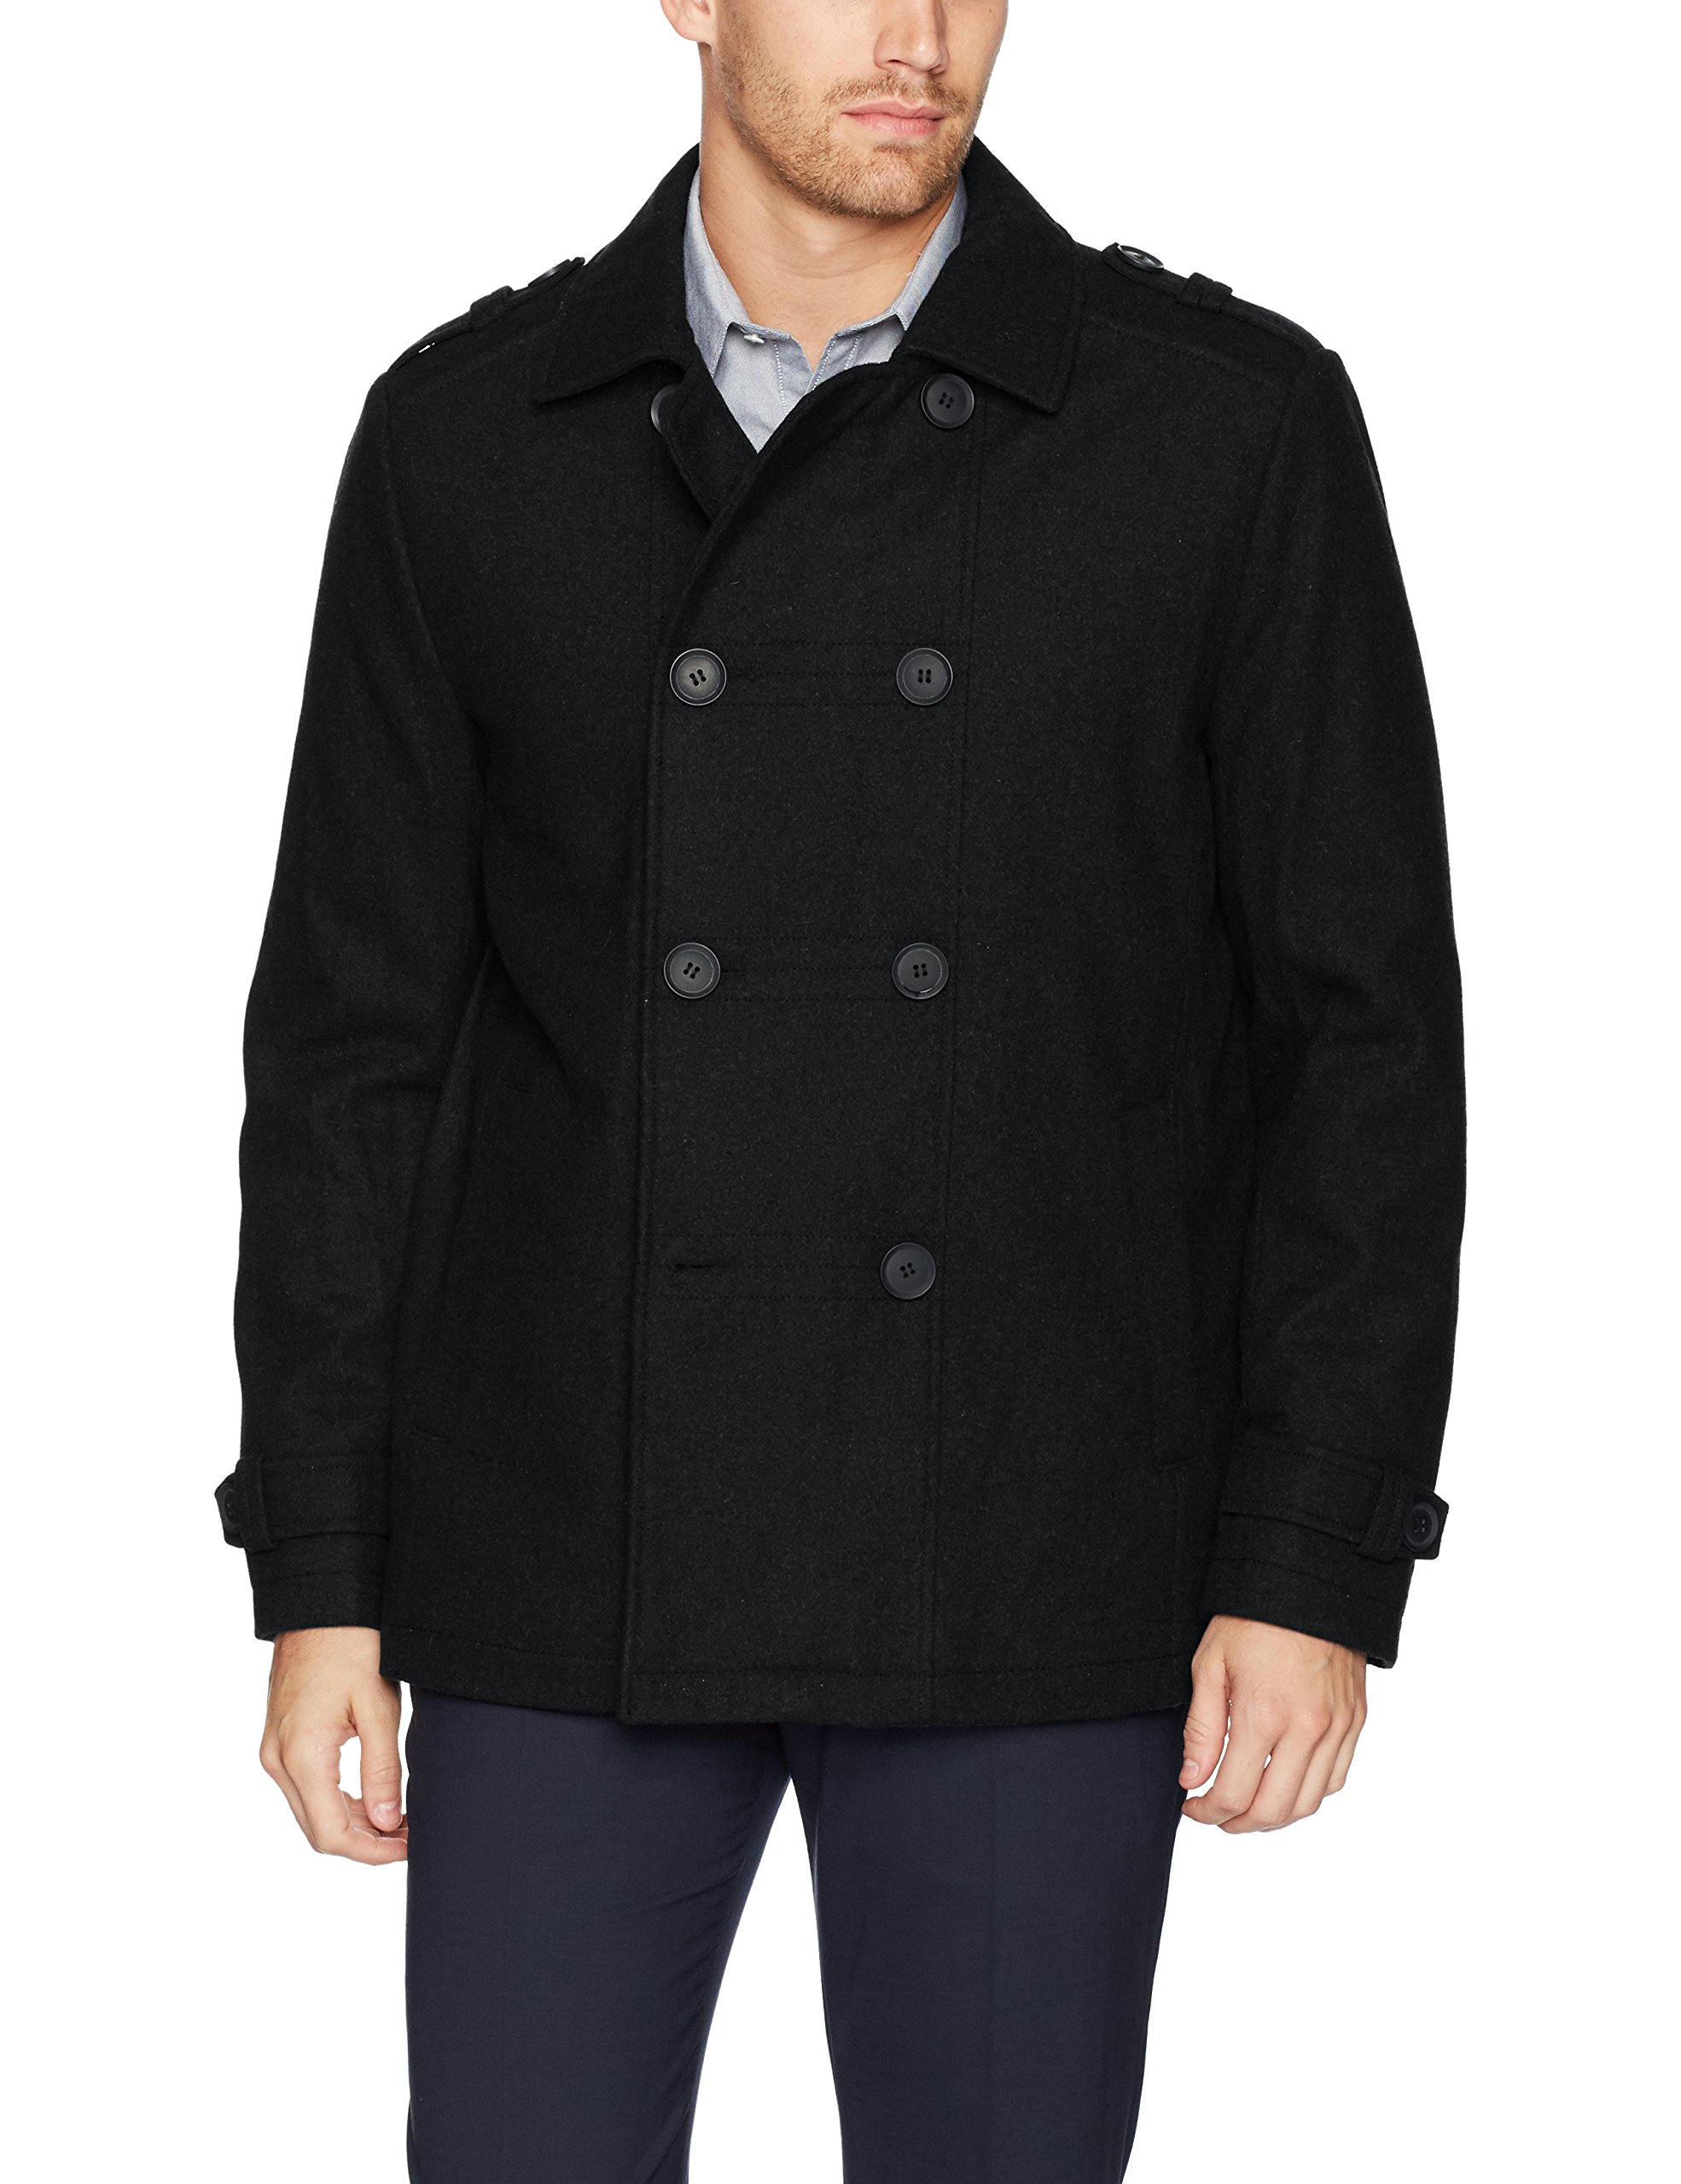 Kenneth Cole New York Men's Double Breasted Wool Jacket, Black, X-Large by Kenneth Cole New York